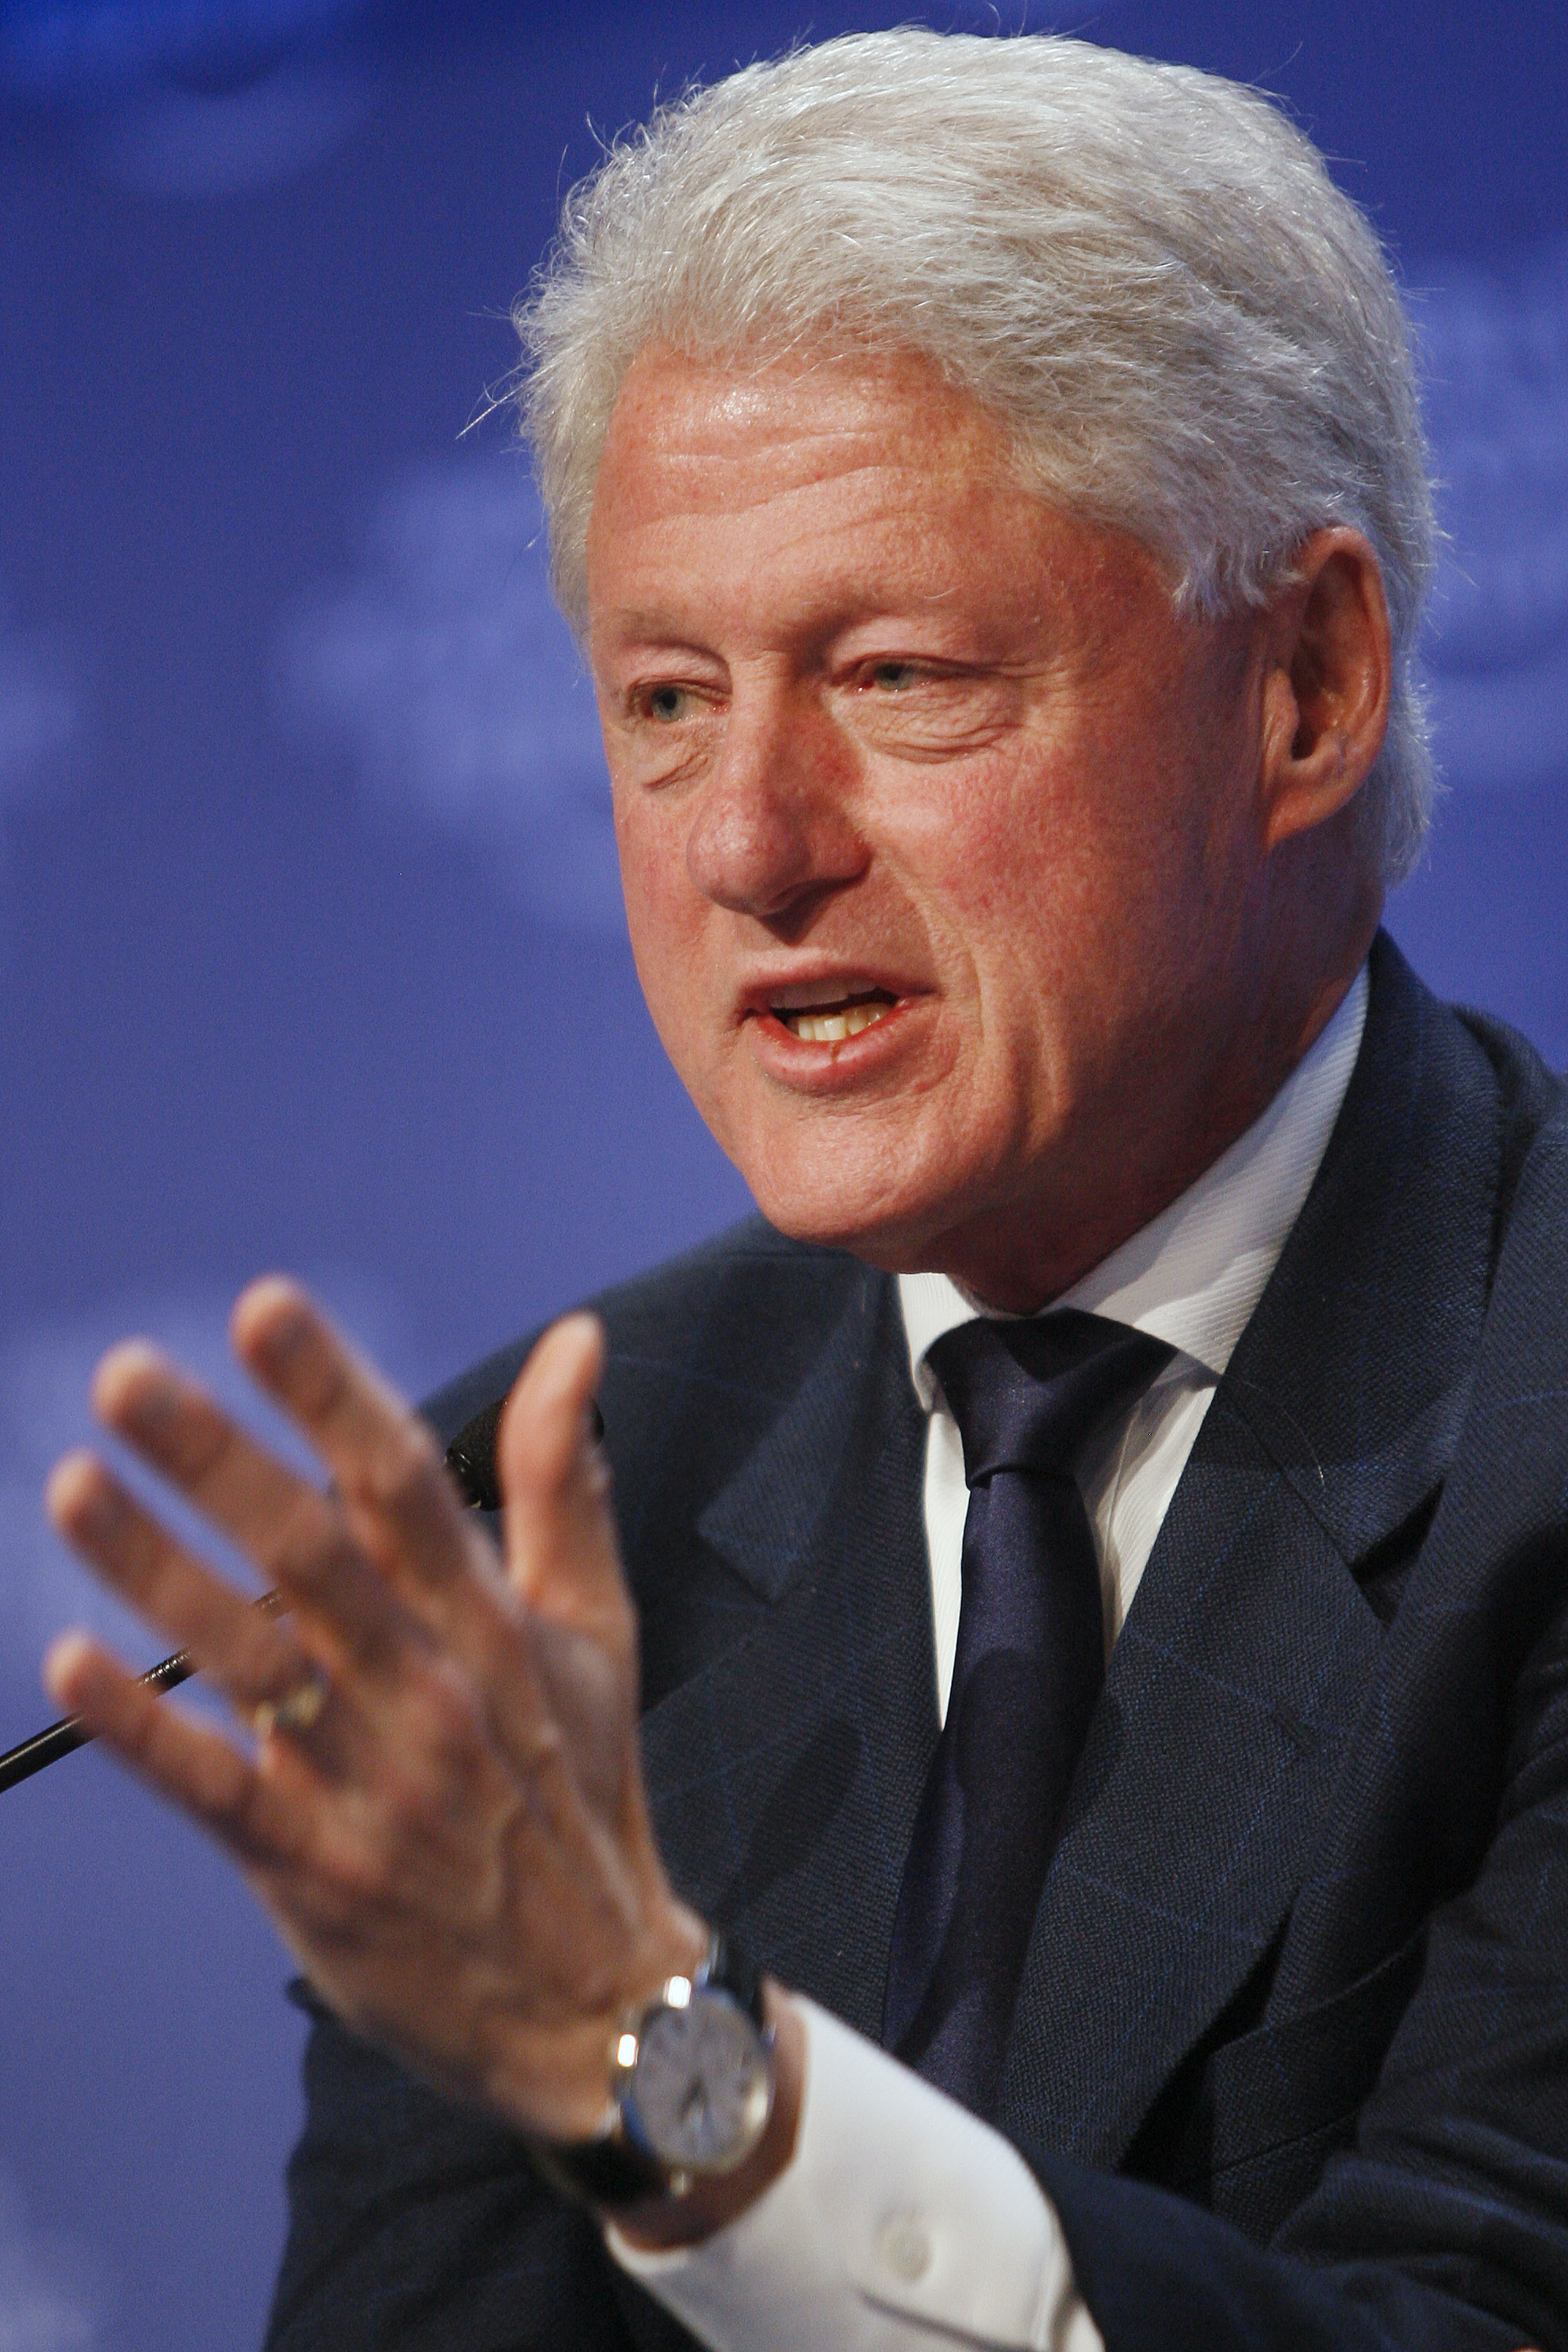 Photo Essay: Bill Clinton Visits India - India Real Time - WSJ